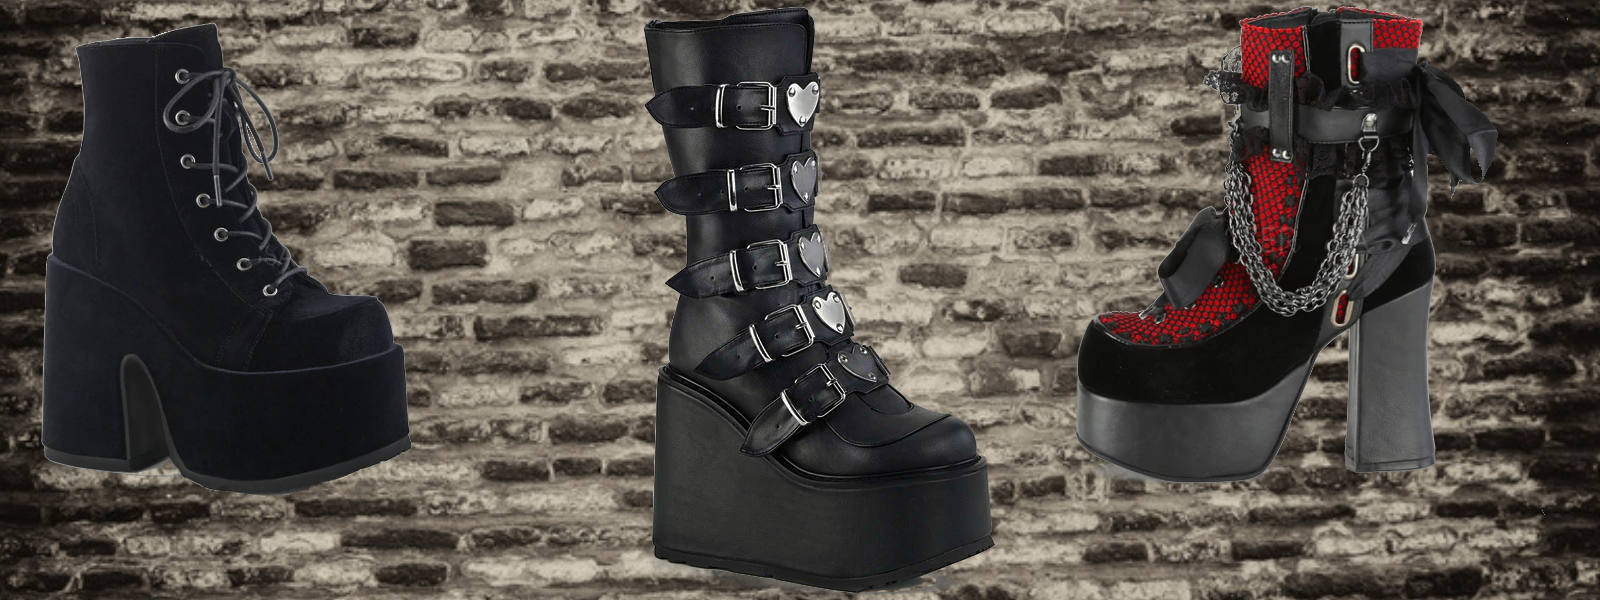 new gothic shoes and boots